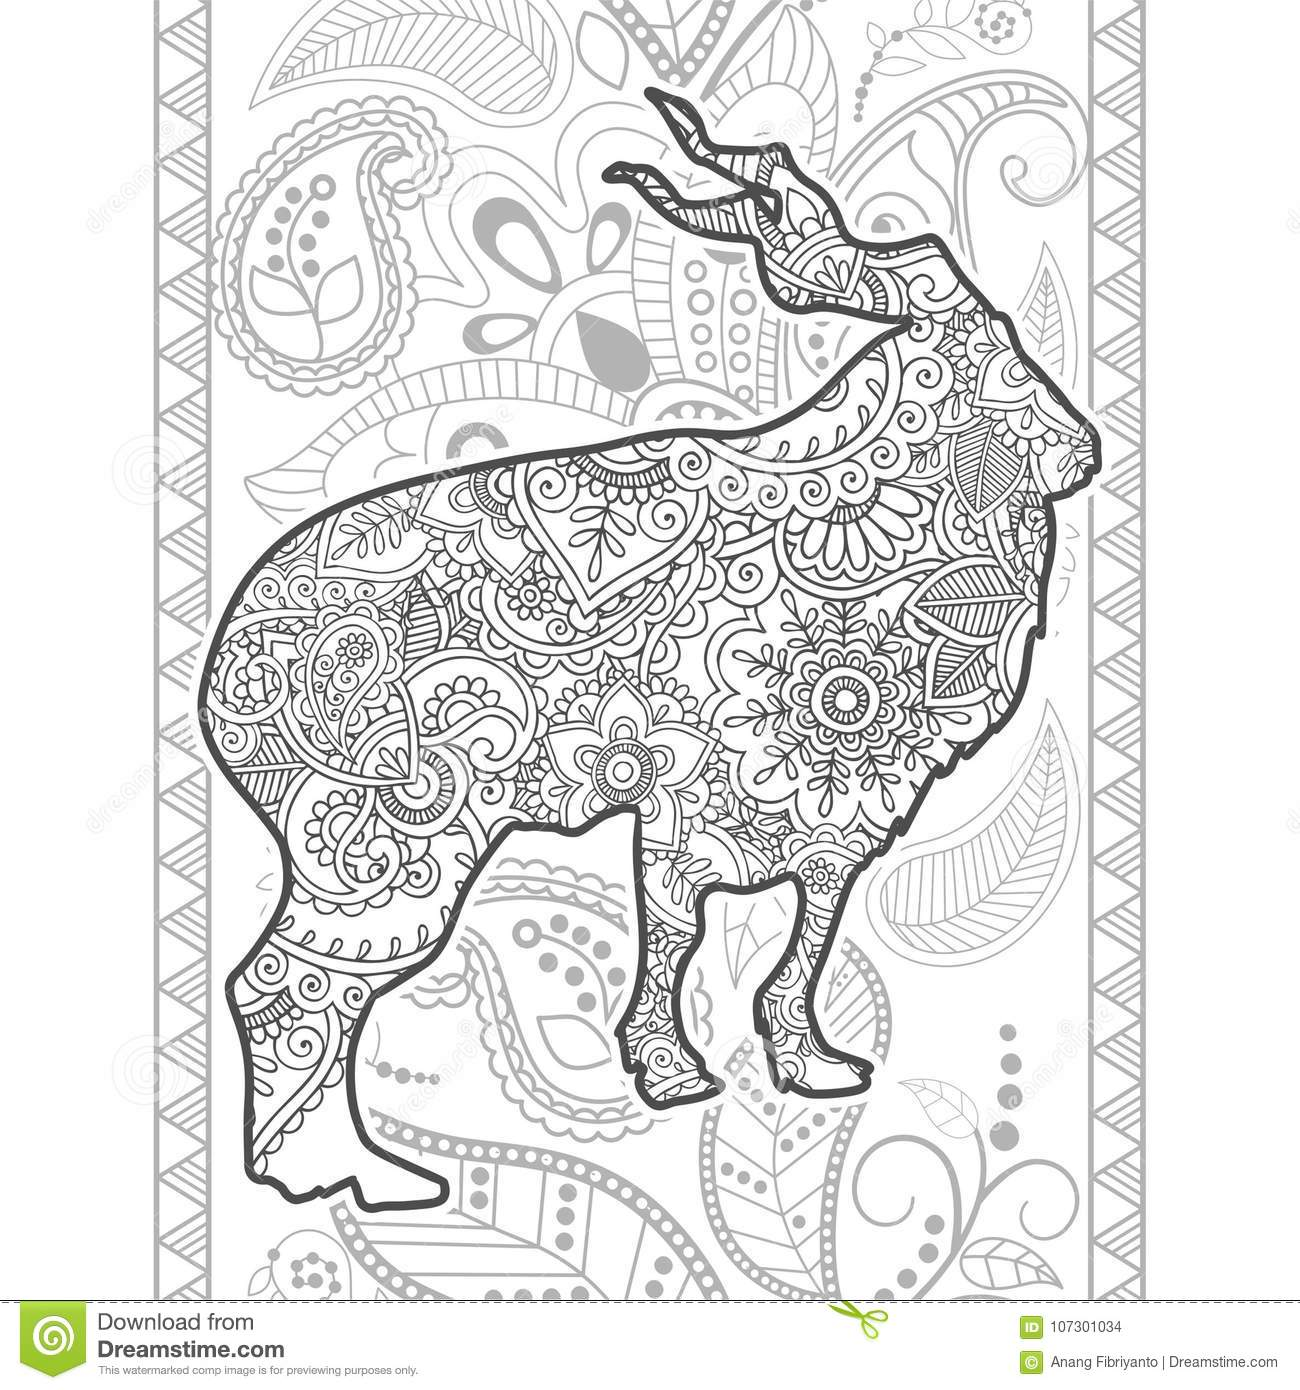 Hand Drawn Mountain Goat Doodle Animal Paisley Adult Stress